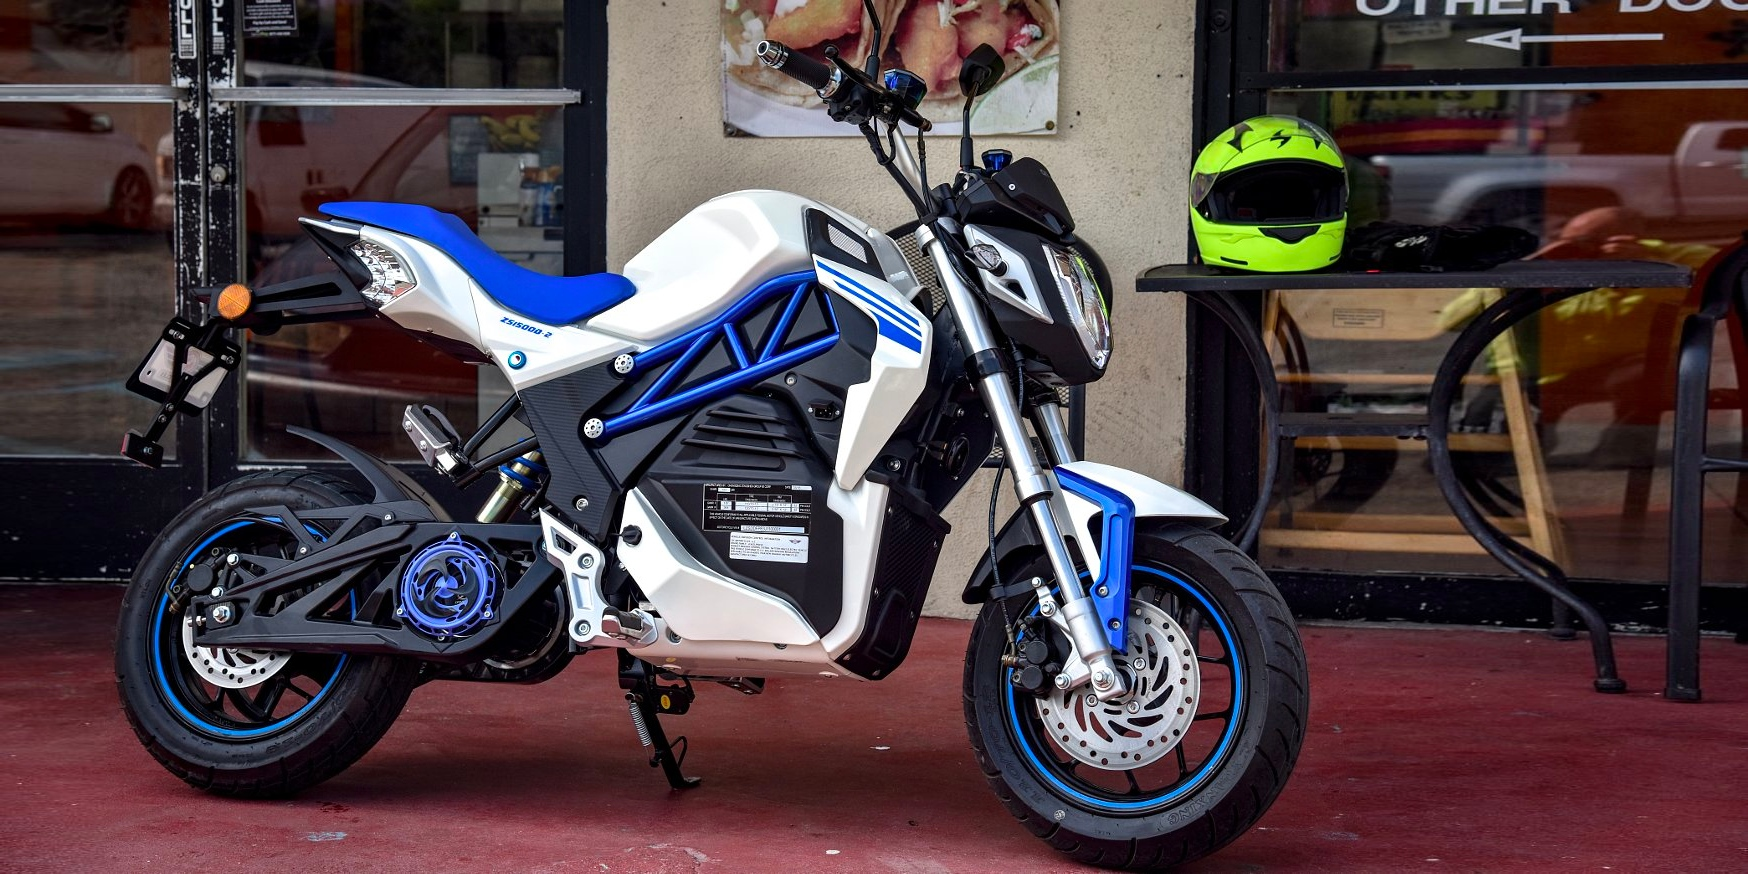 An electric motorcycle for $1,995 in the US – where do I sign up!?